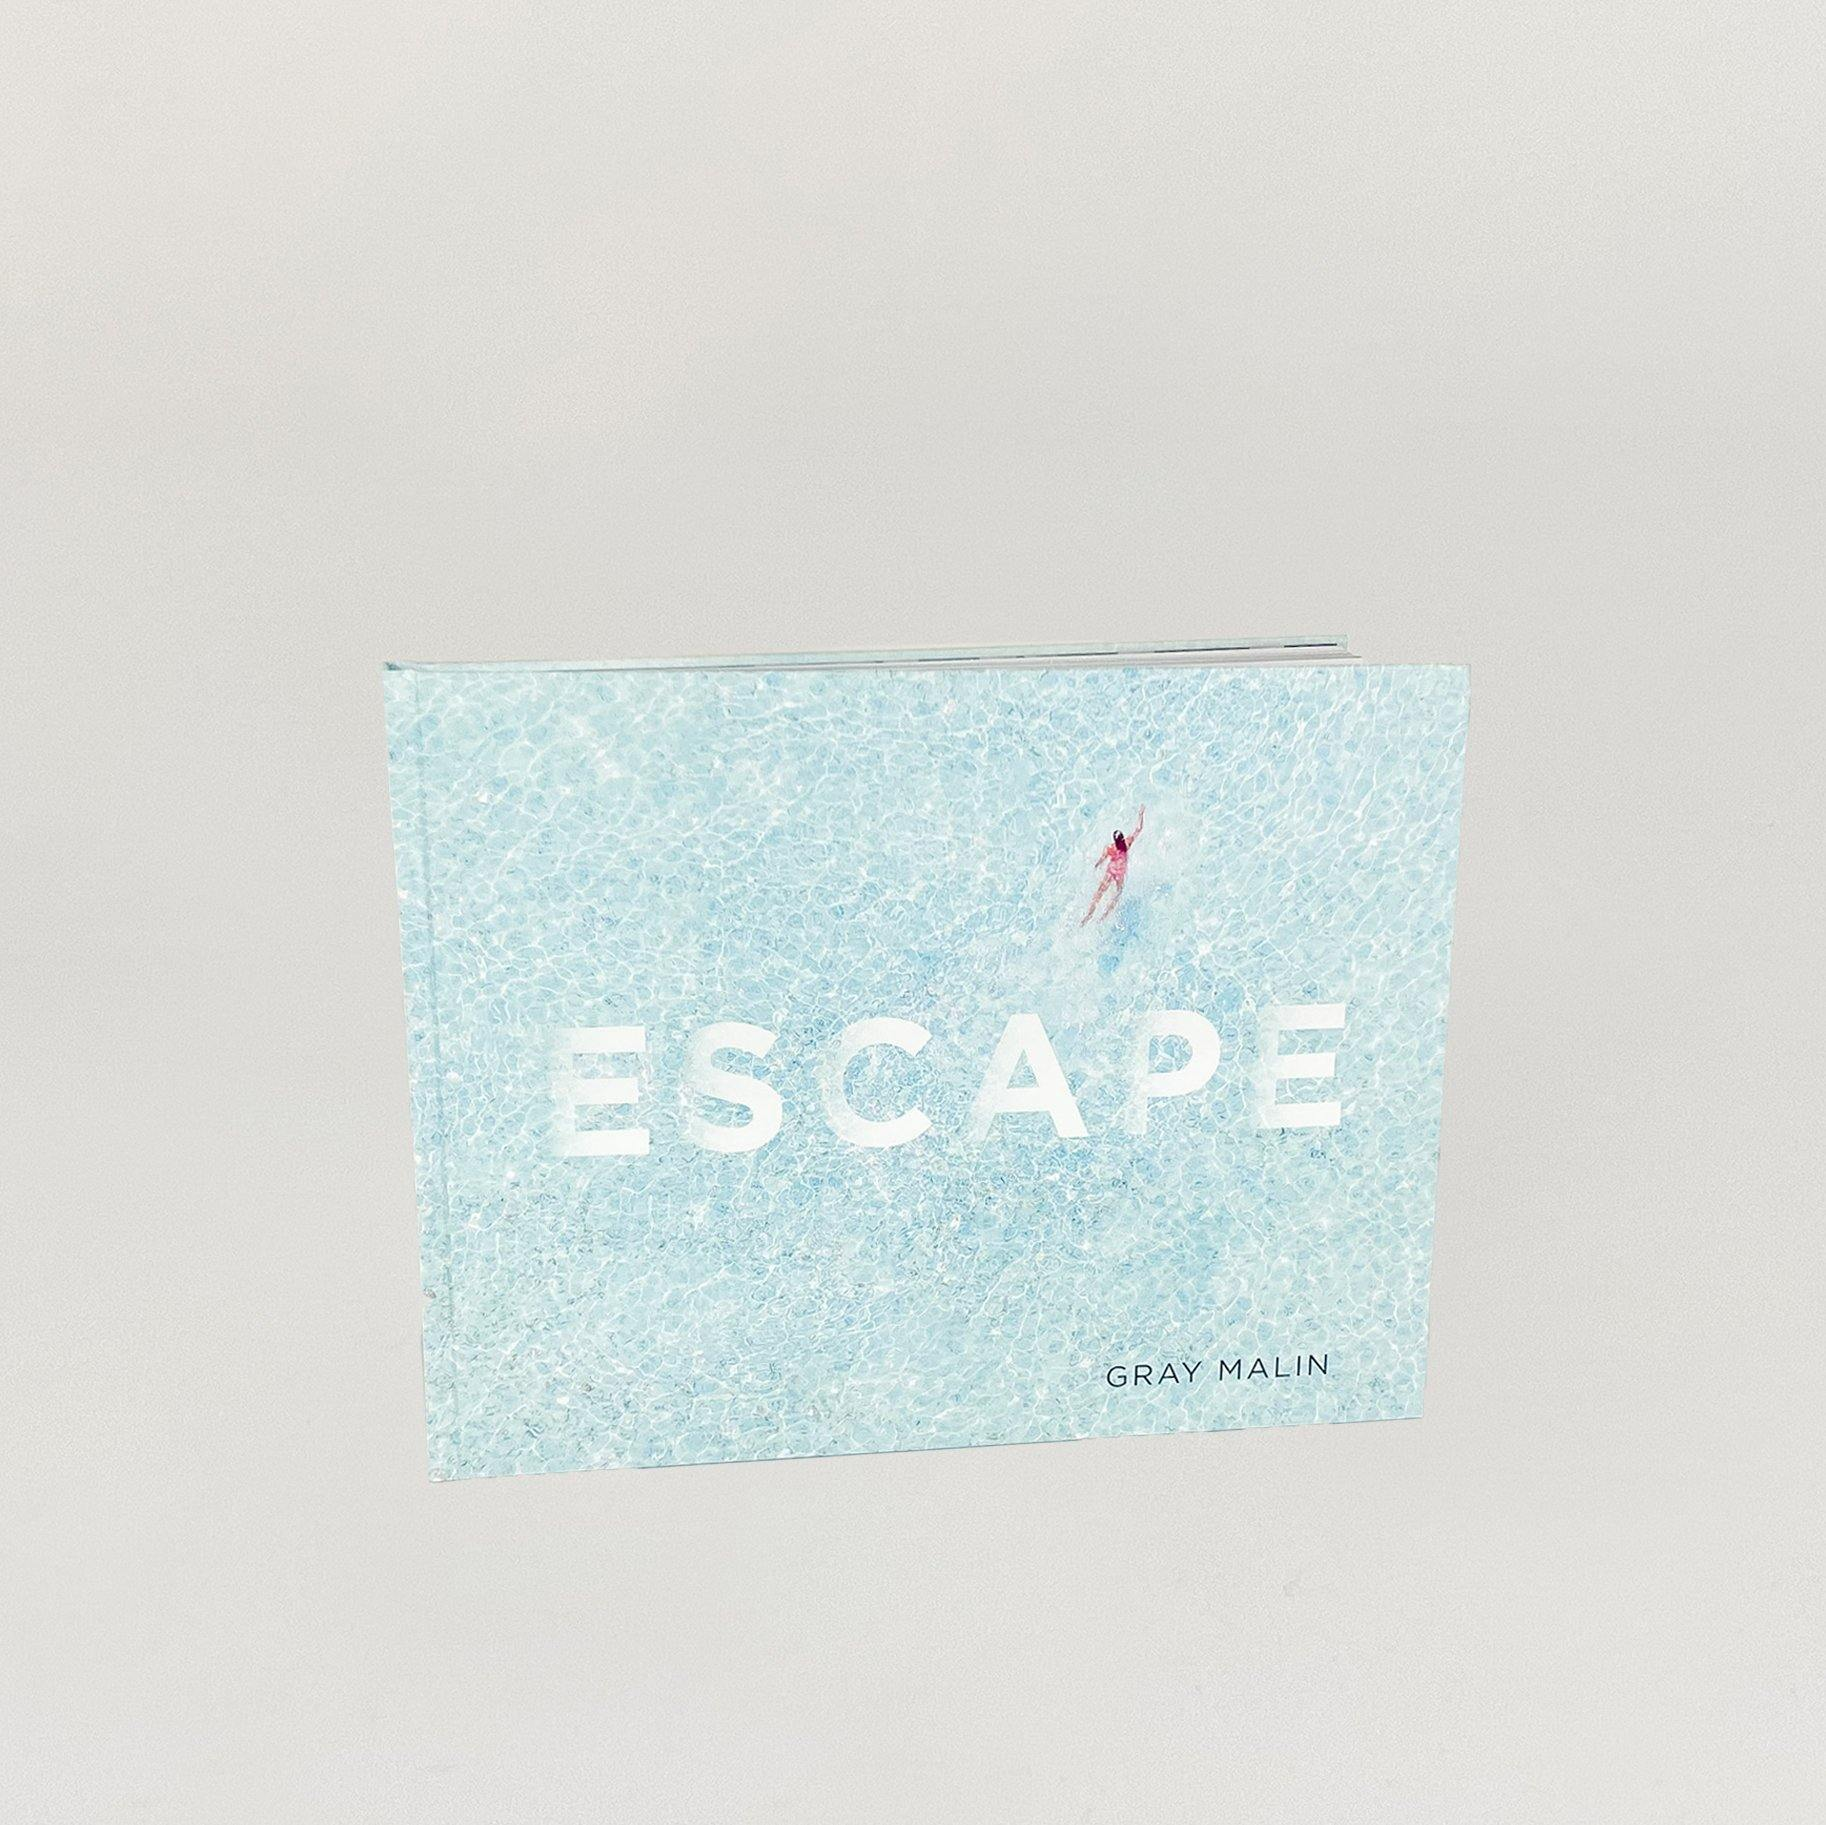 Gray Malin Escape Book - KM Home